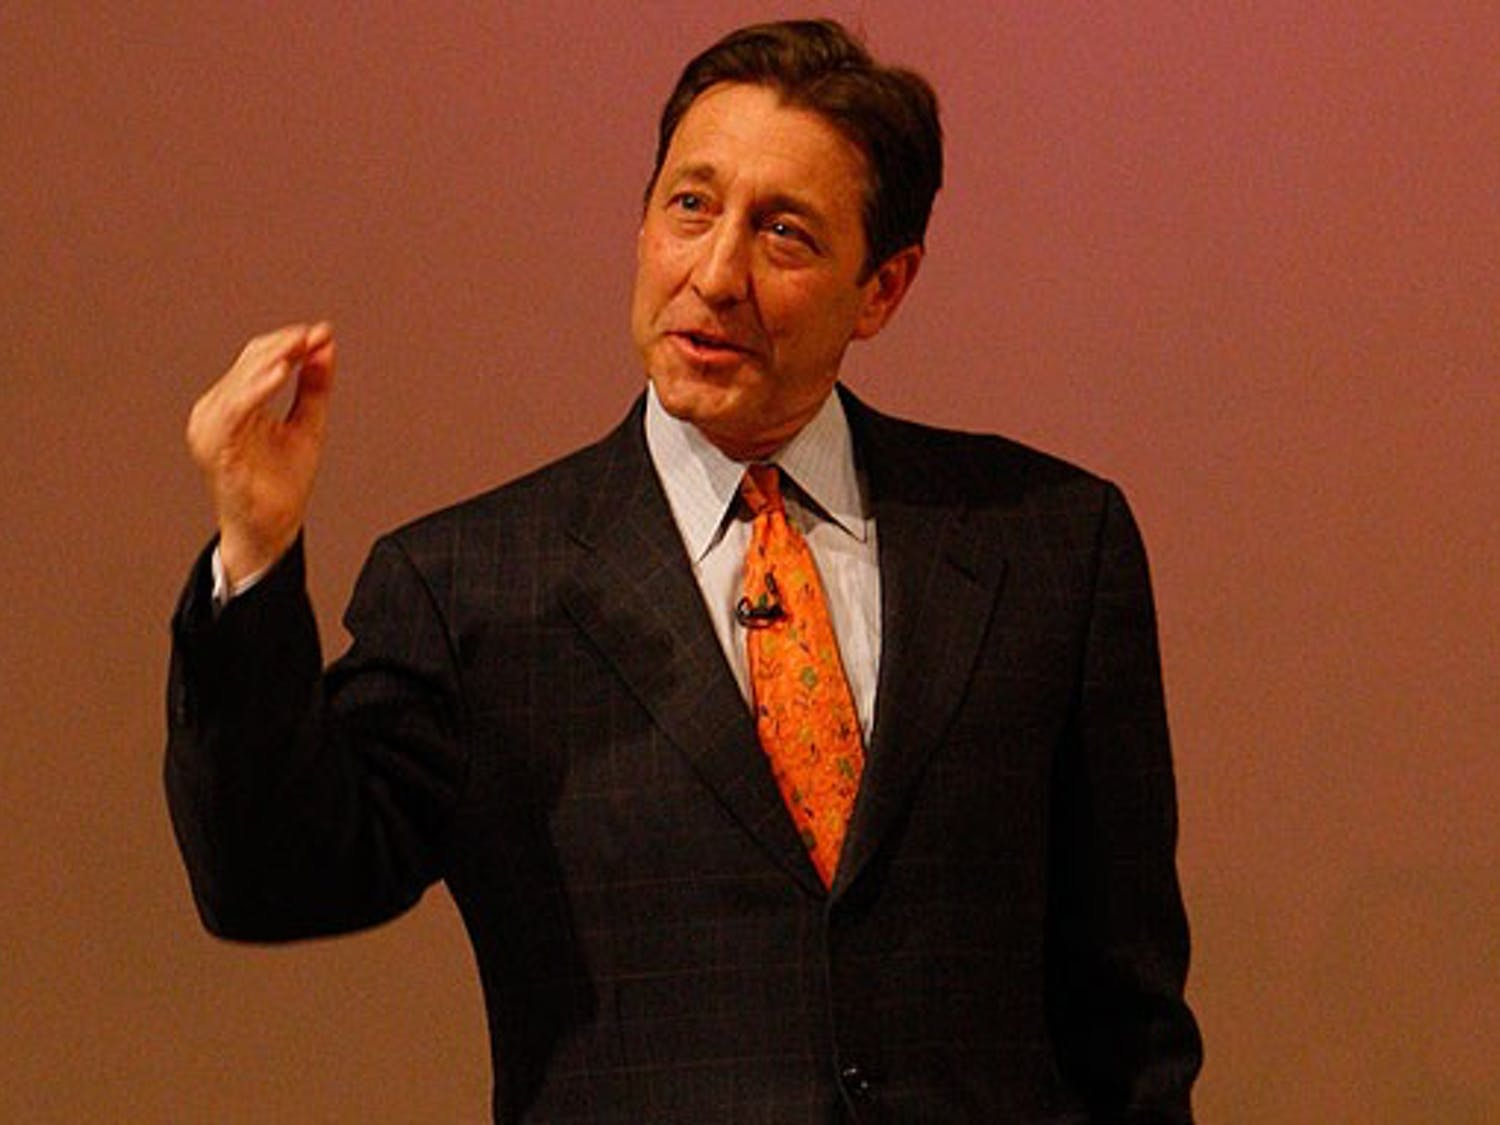 ESPN President George Bodenheimer speaks as a part of Fuqua's Distinguished Speaker Series March 5. In his speech, Bodenheimer described his rise from a mailroom clerk to the sports network's top post.